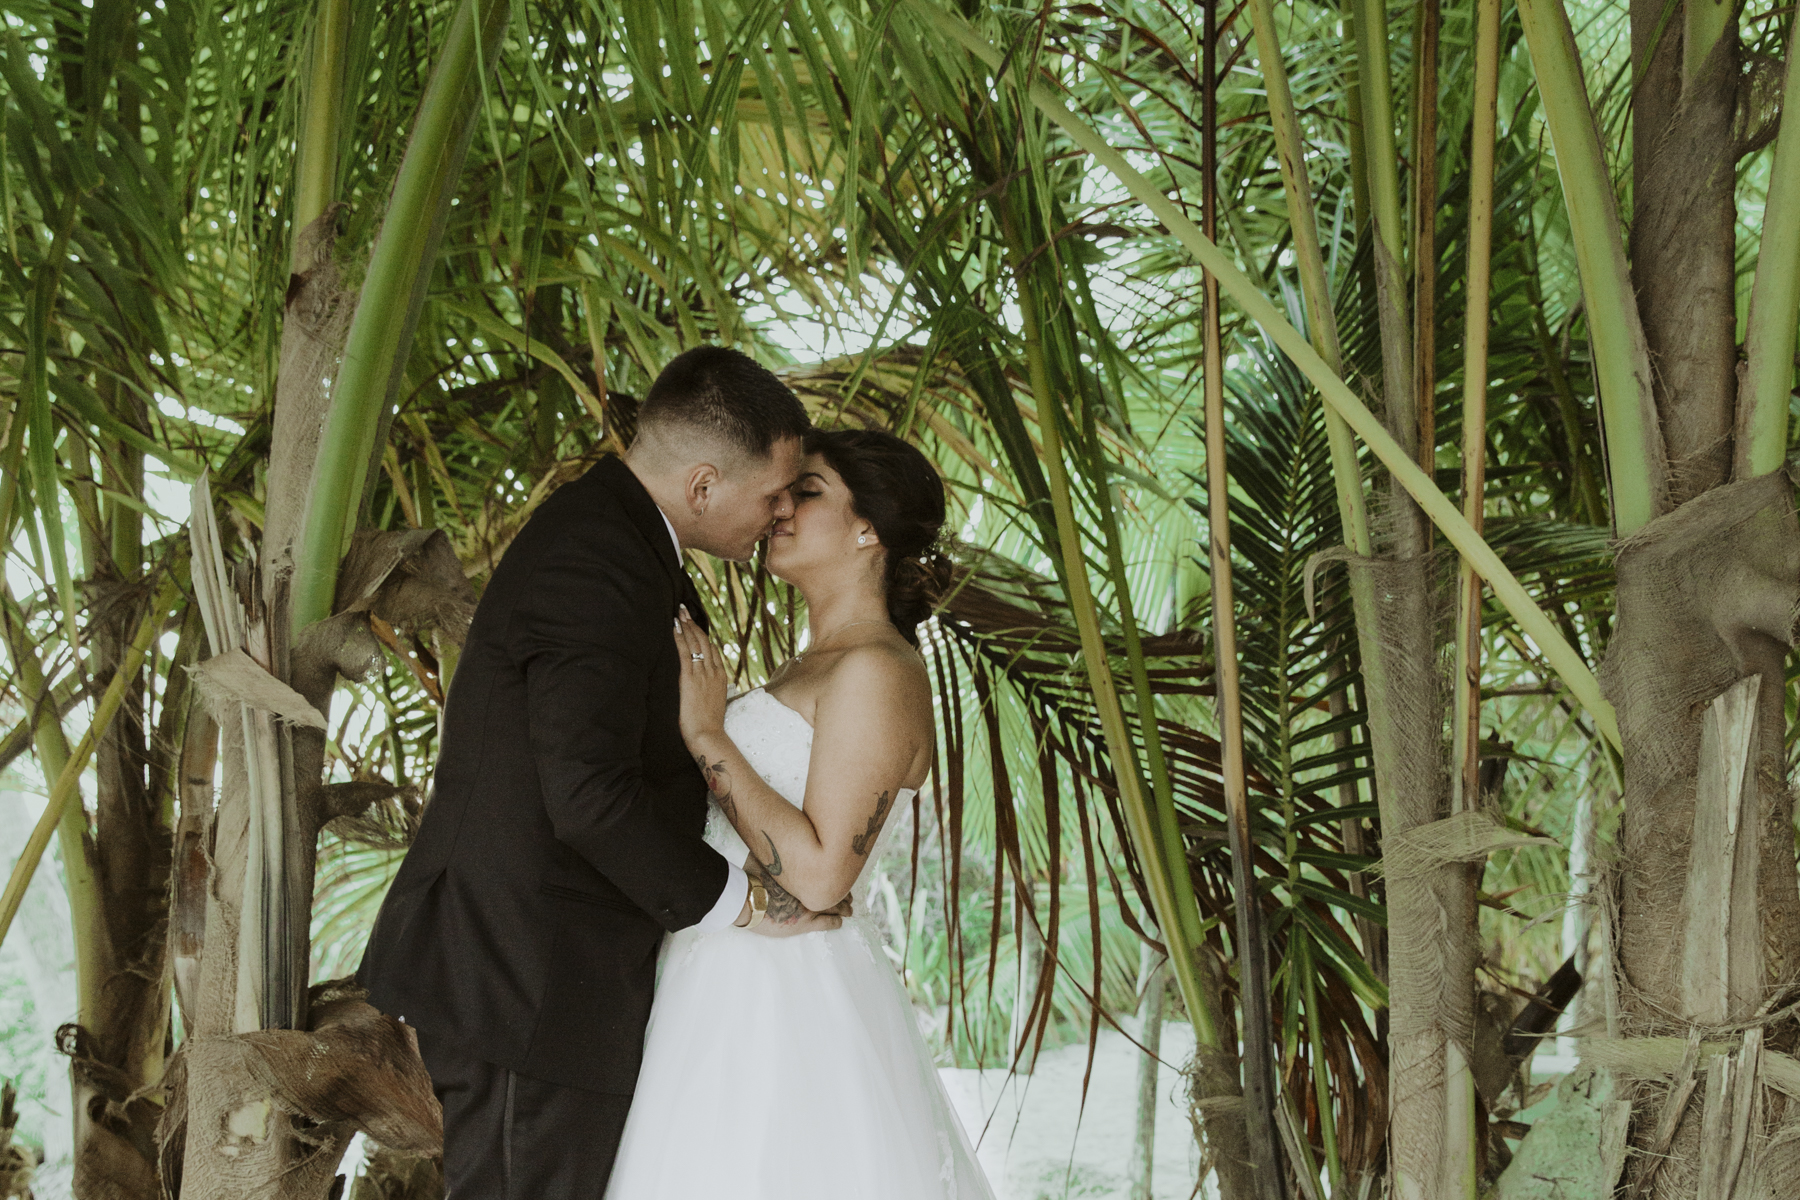 Quintana Roo Playa del Carmen - wedding